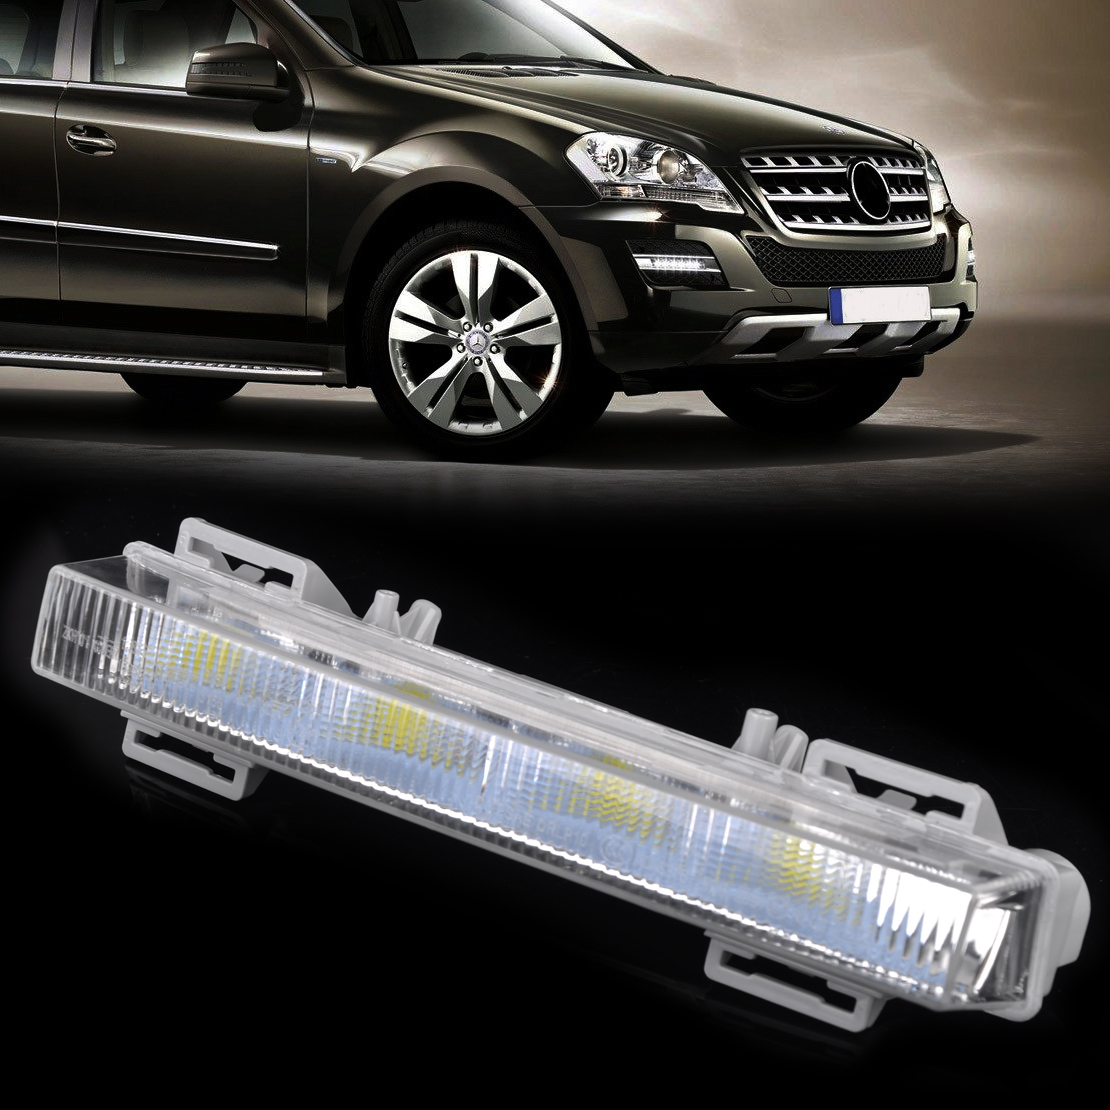 CITALL Front Right LED Daytime Running Light Driving Lamp 2049065501 for Mercedes Benz W166 ML350 ML500 ML550 X204 GLK250 GLK350 door mirror turn signal light for mercedes benz w163 ml270 ml230 ml320 ml400 ml350 ml500 ml430 ml55